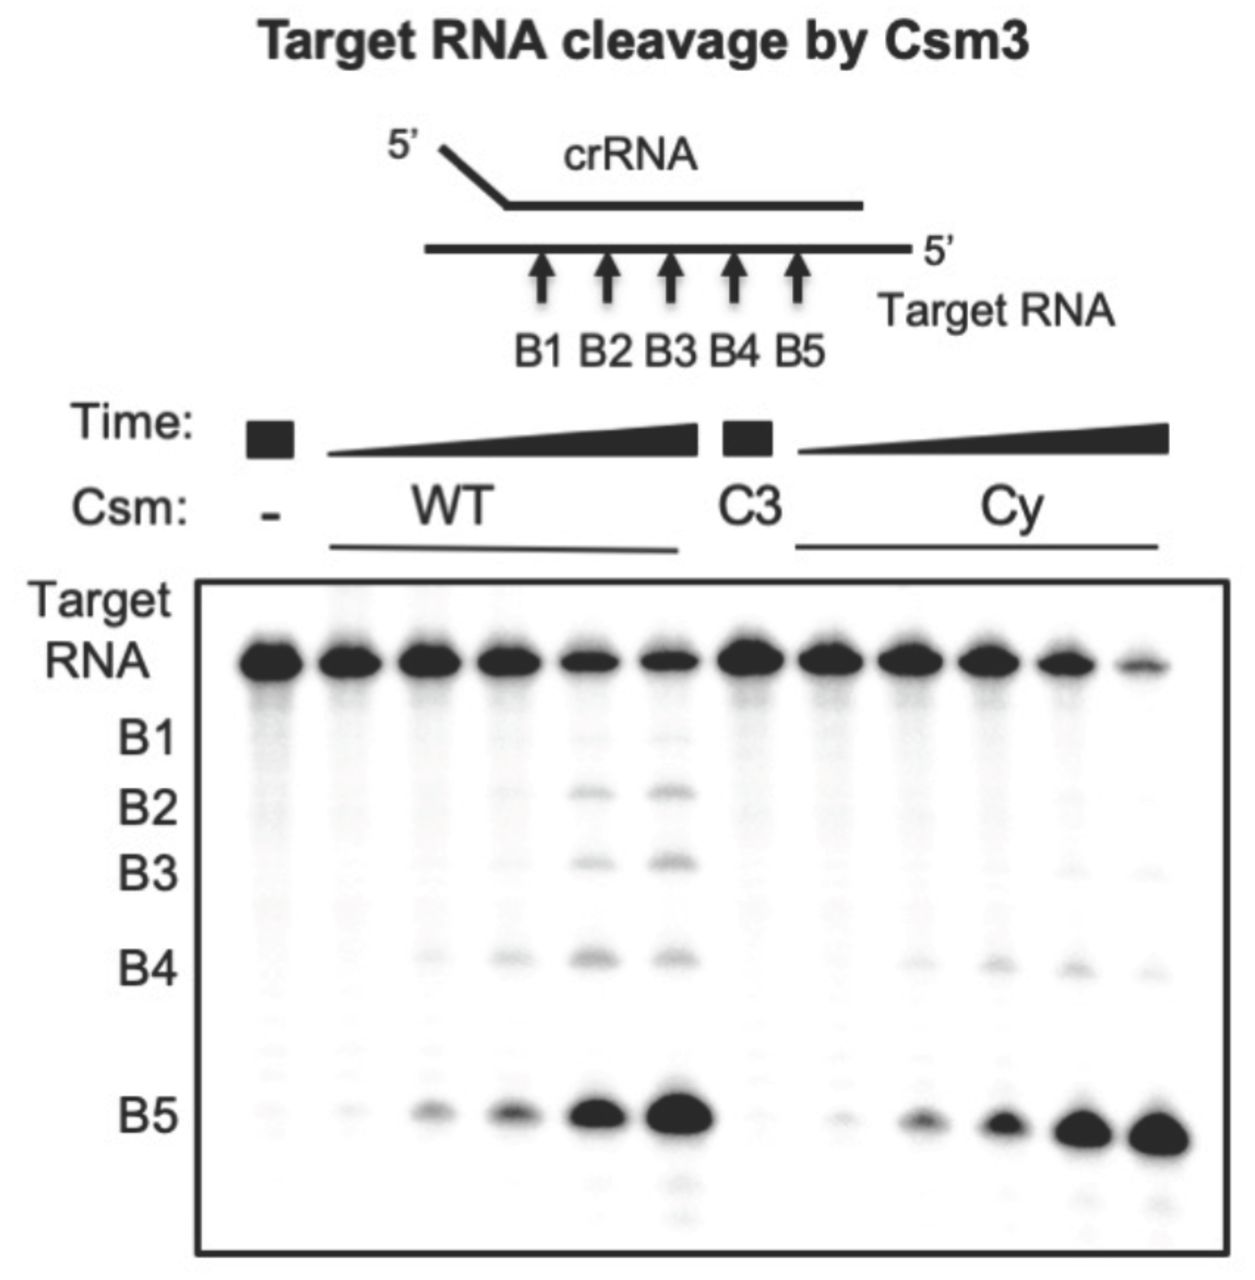 Target <t>RNA</t> cleavage by the <t>Csm</t> complex. Wild-type (WT), Csm3 D35A variant (C3), or cyclase variant (Cy) Csm were incubated with 5'- 32 P-target RNA under single-turnover conditions for 0.5, 2, 5, 30, 90 min and analysed by denaturing PAGE.